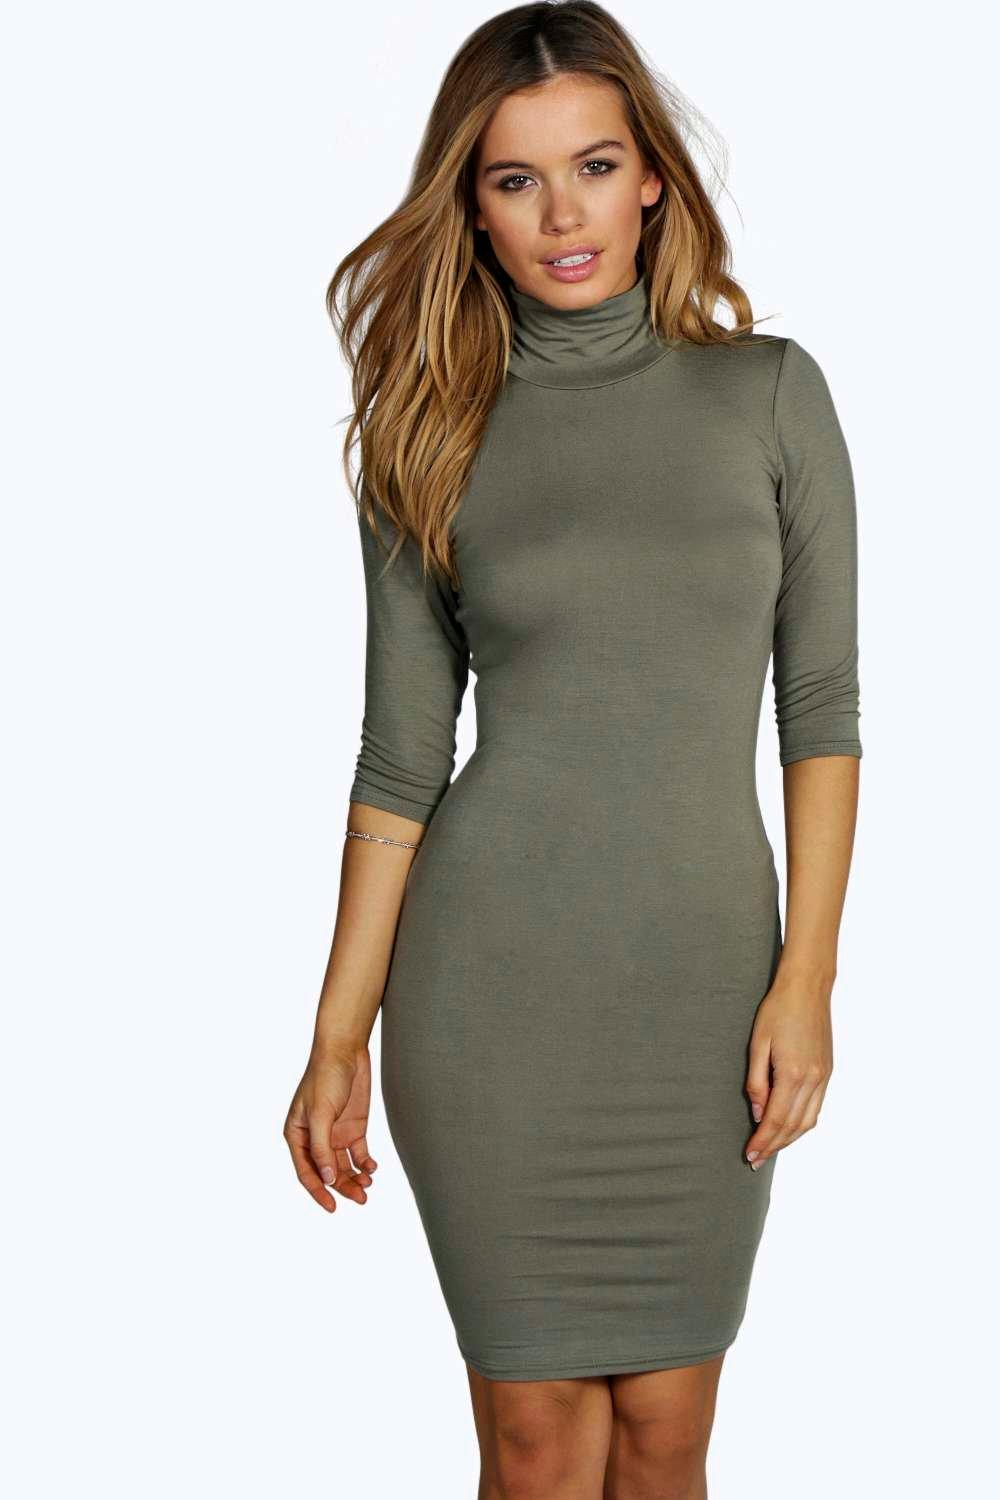 Petite Kayleigh High Neck 3/4 Bodycon Dress